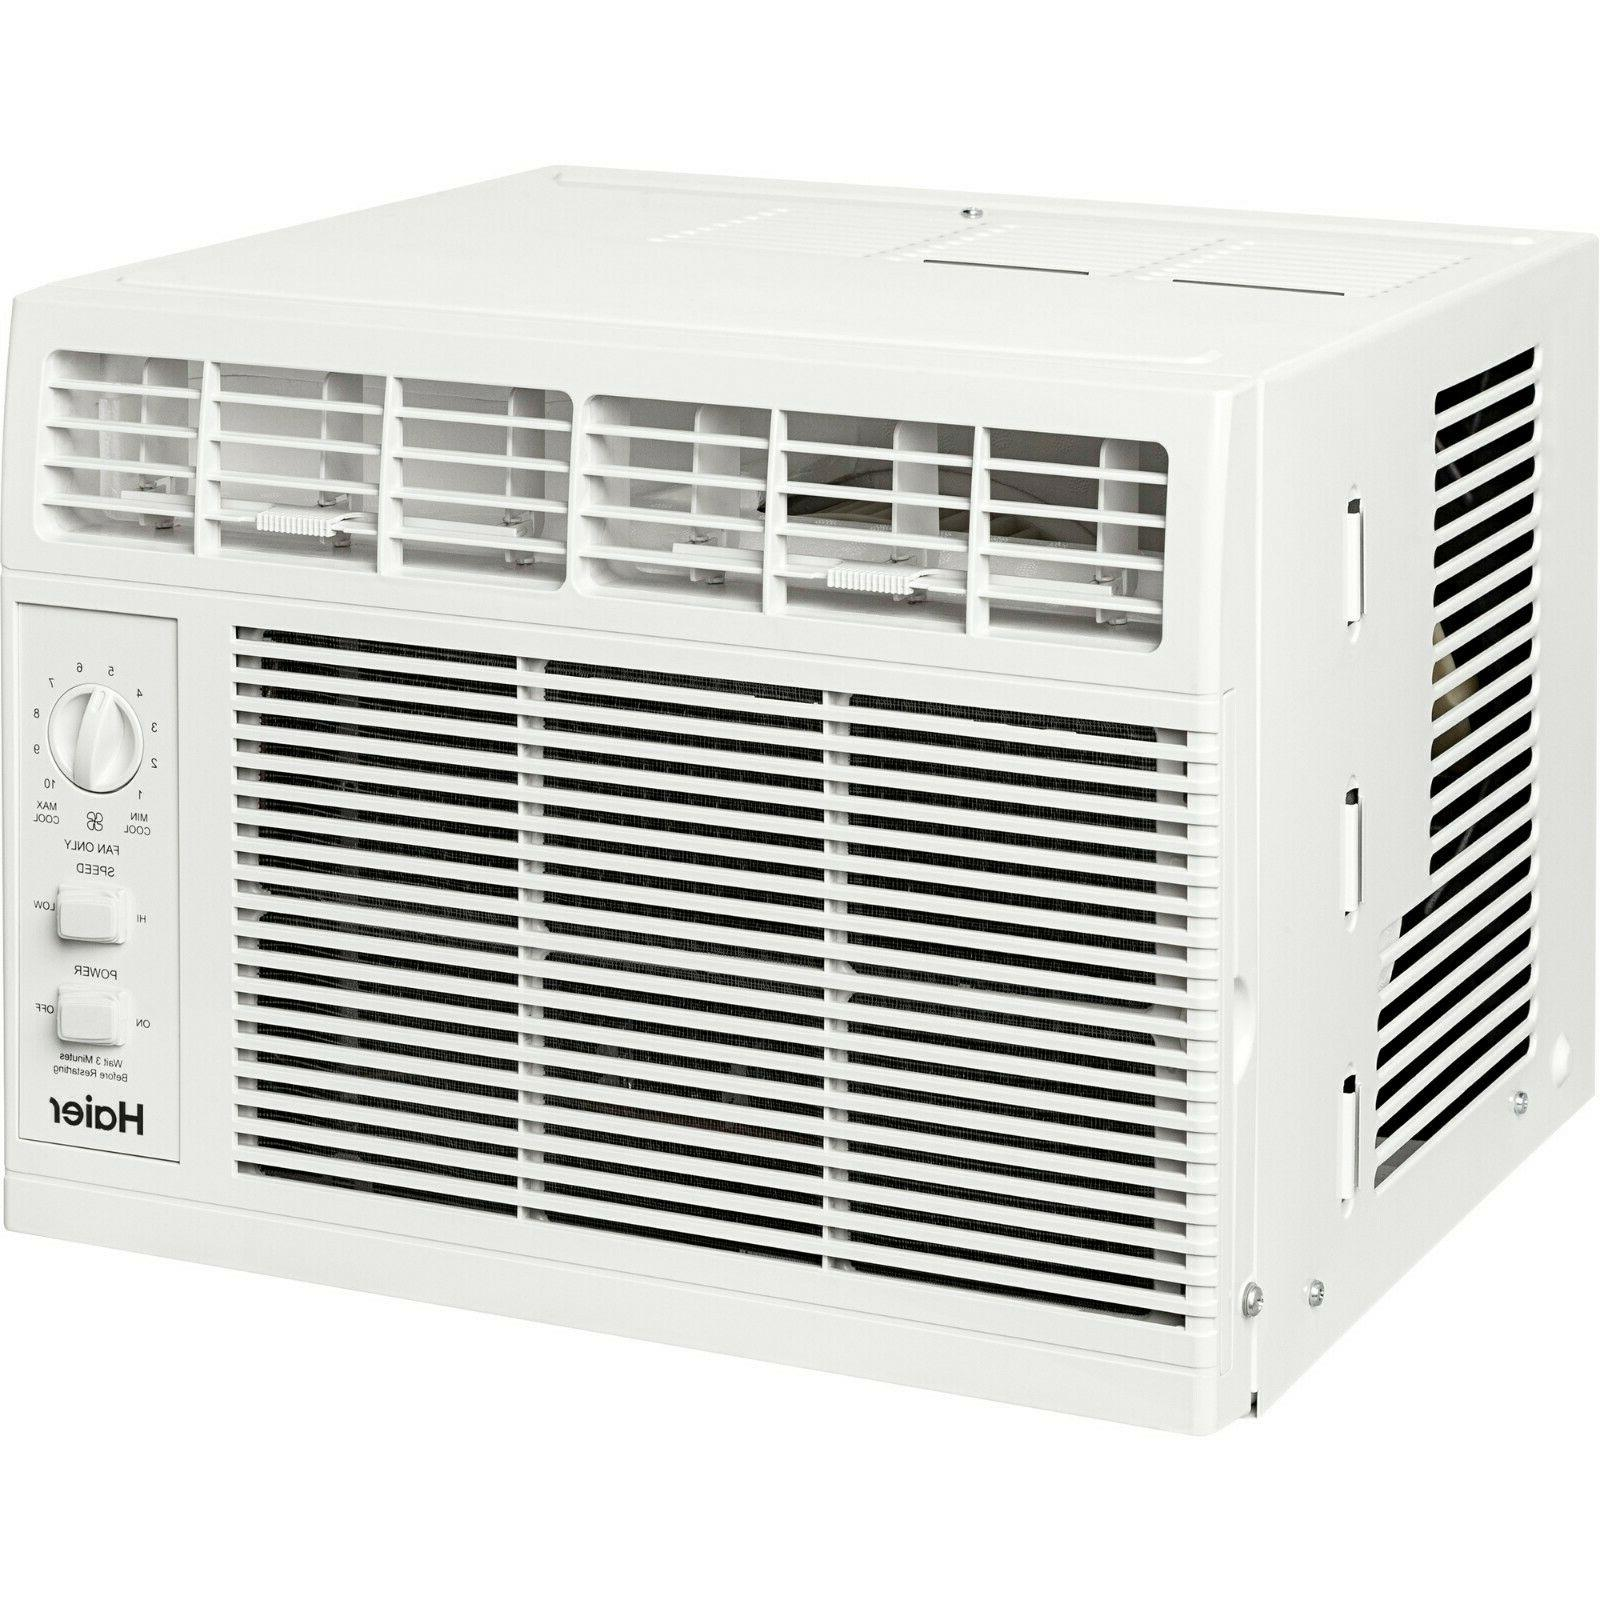 Haier 5,000 Window Mount Kit Cooling